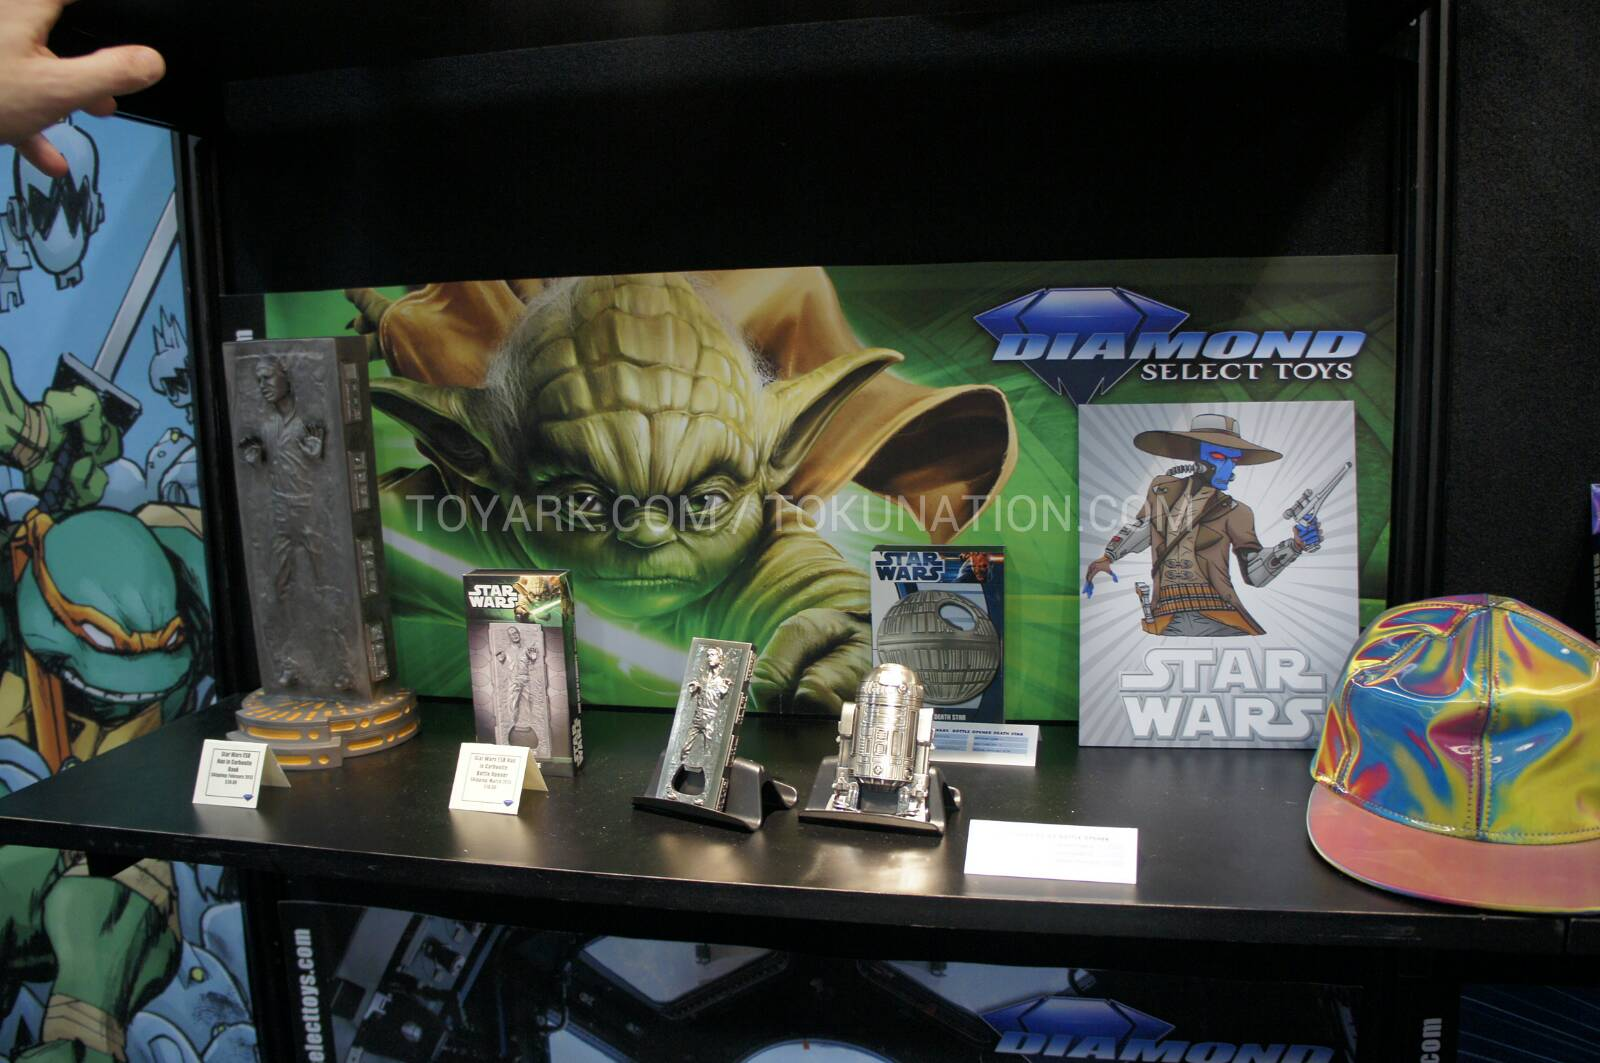 Star Wars Toys 2013 : Toy fair diamond select toys star wars items the